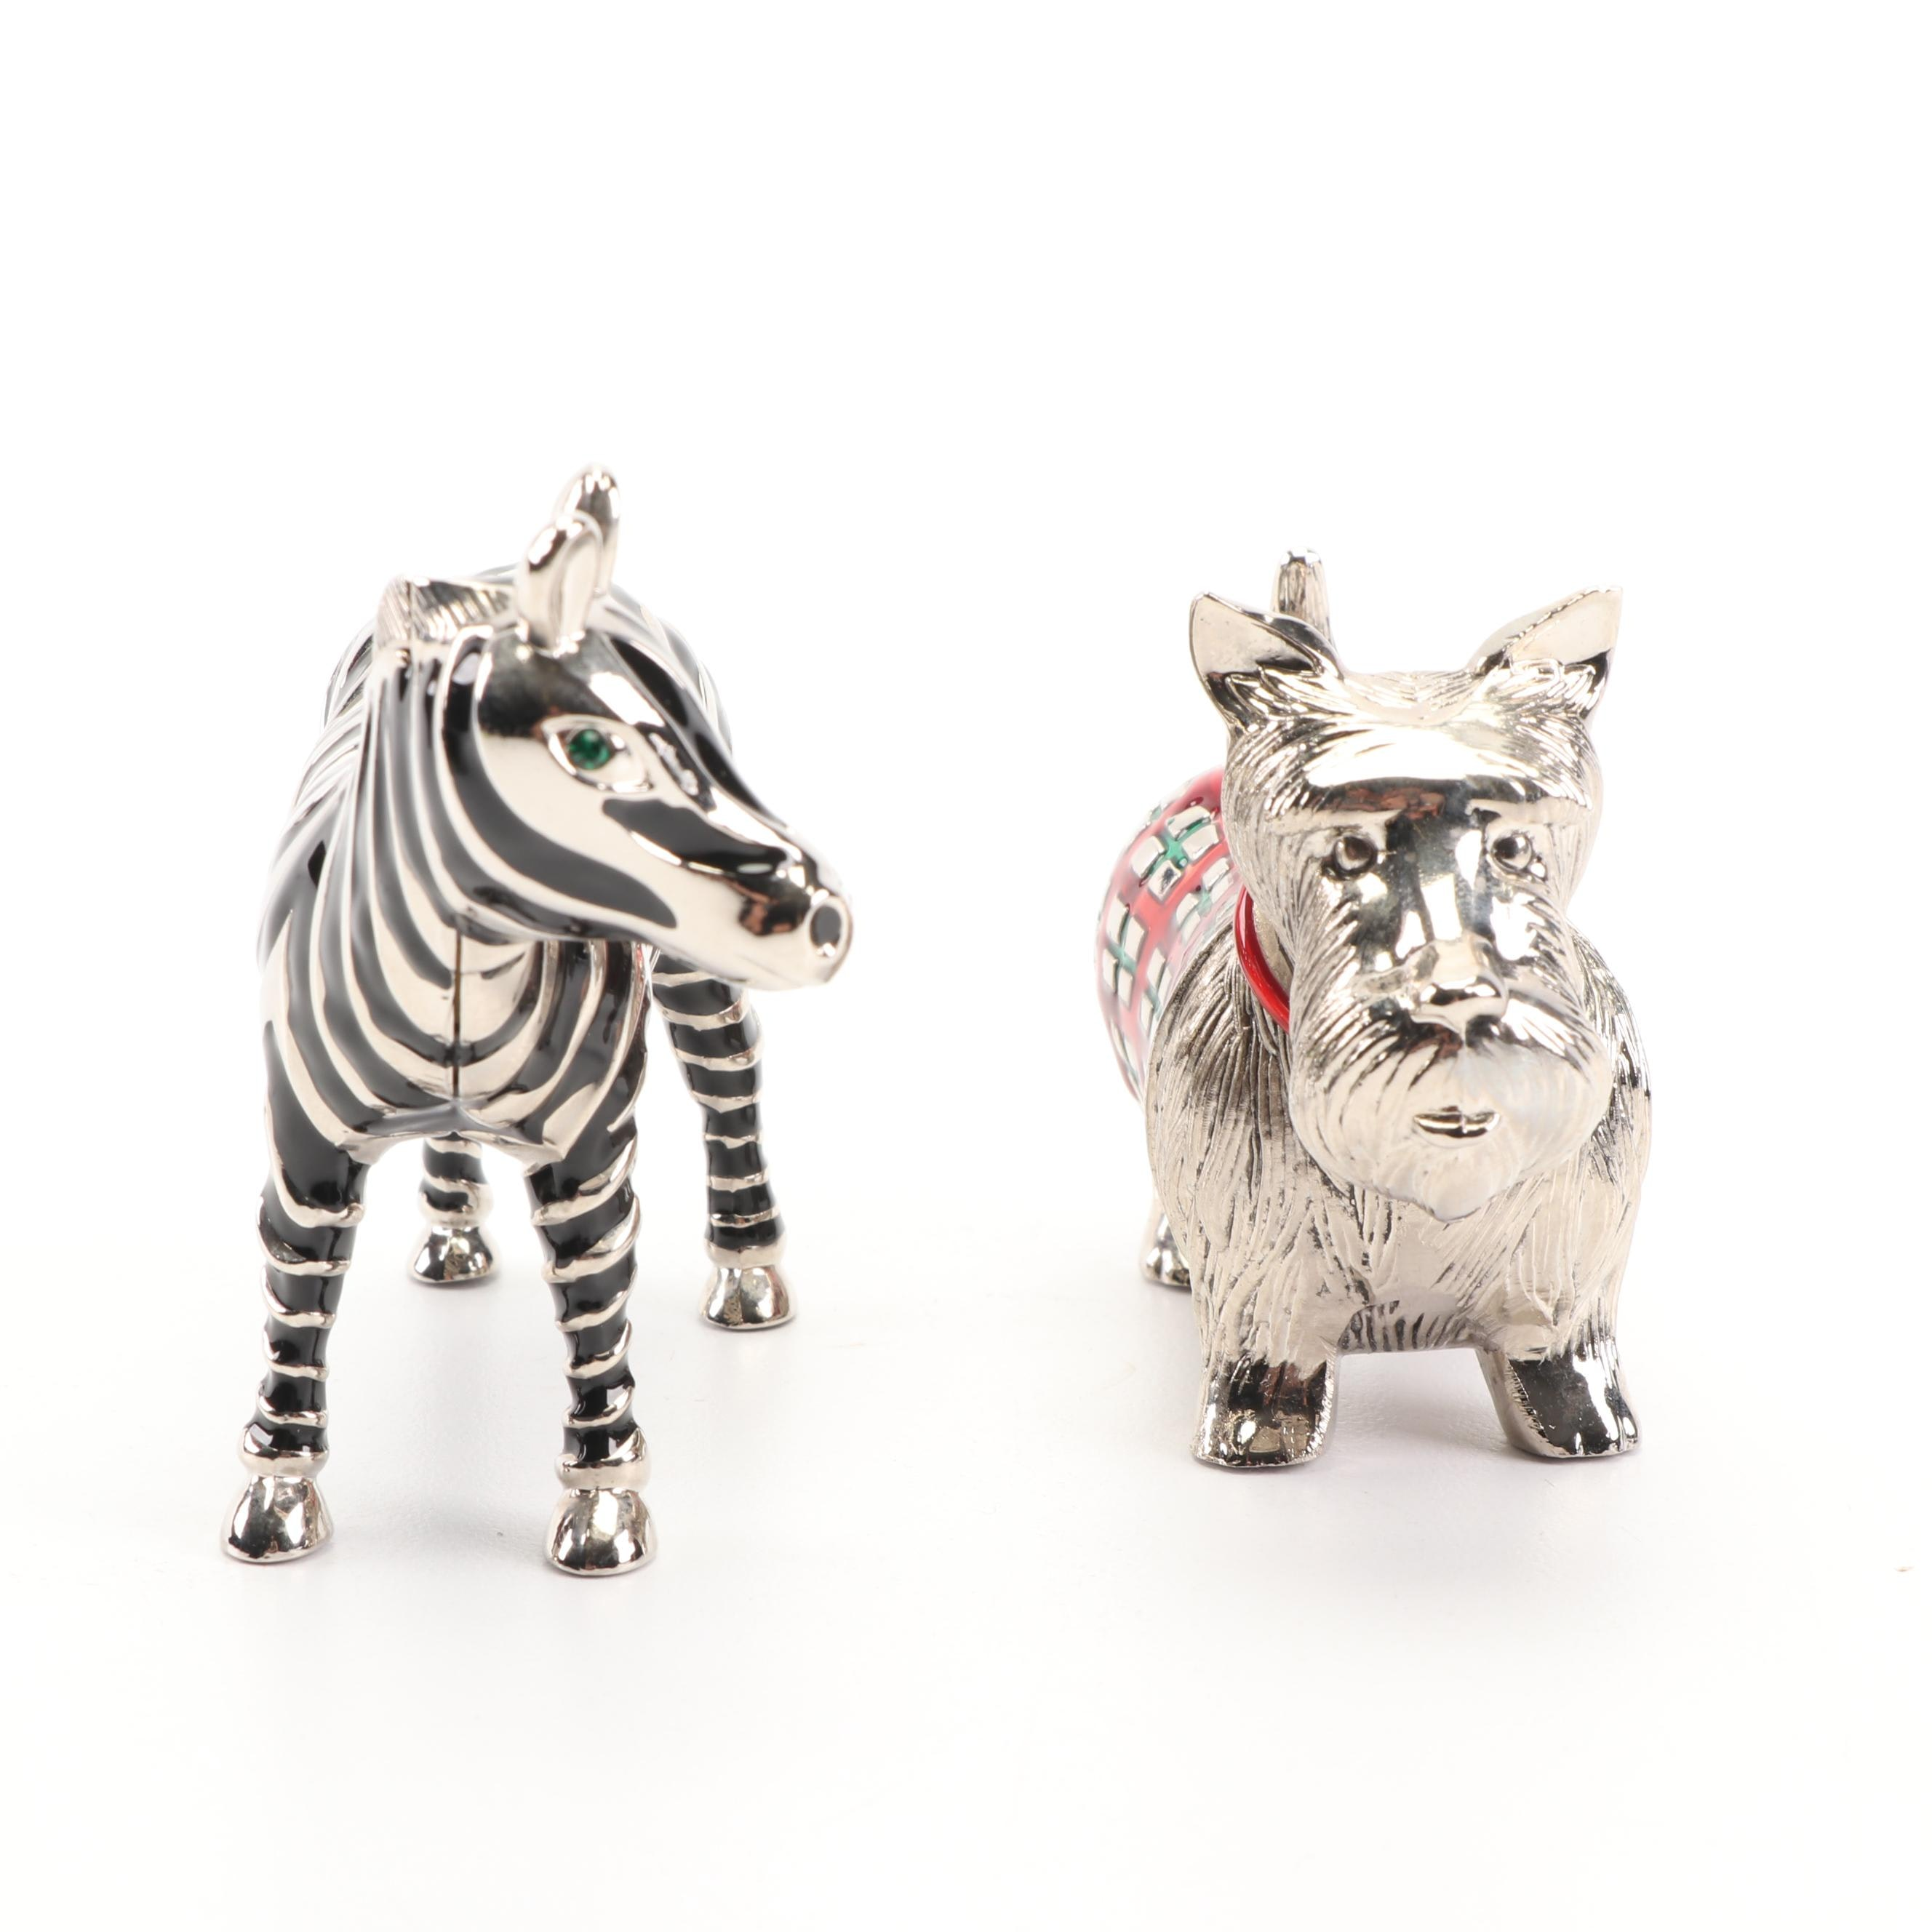 Metal Scotty Dog and Zebra Themed Shakers